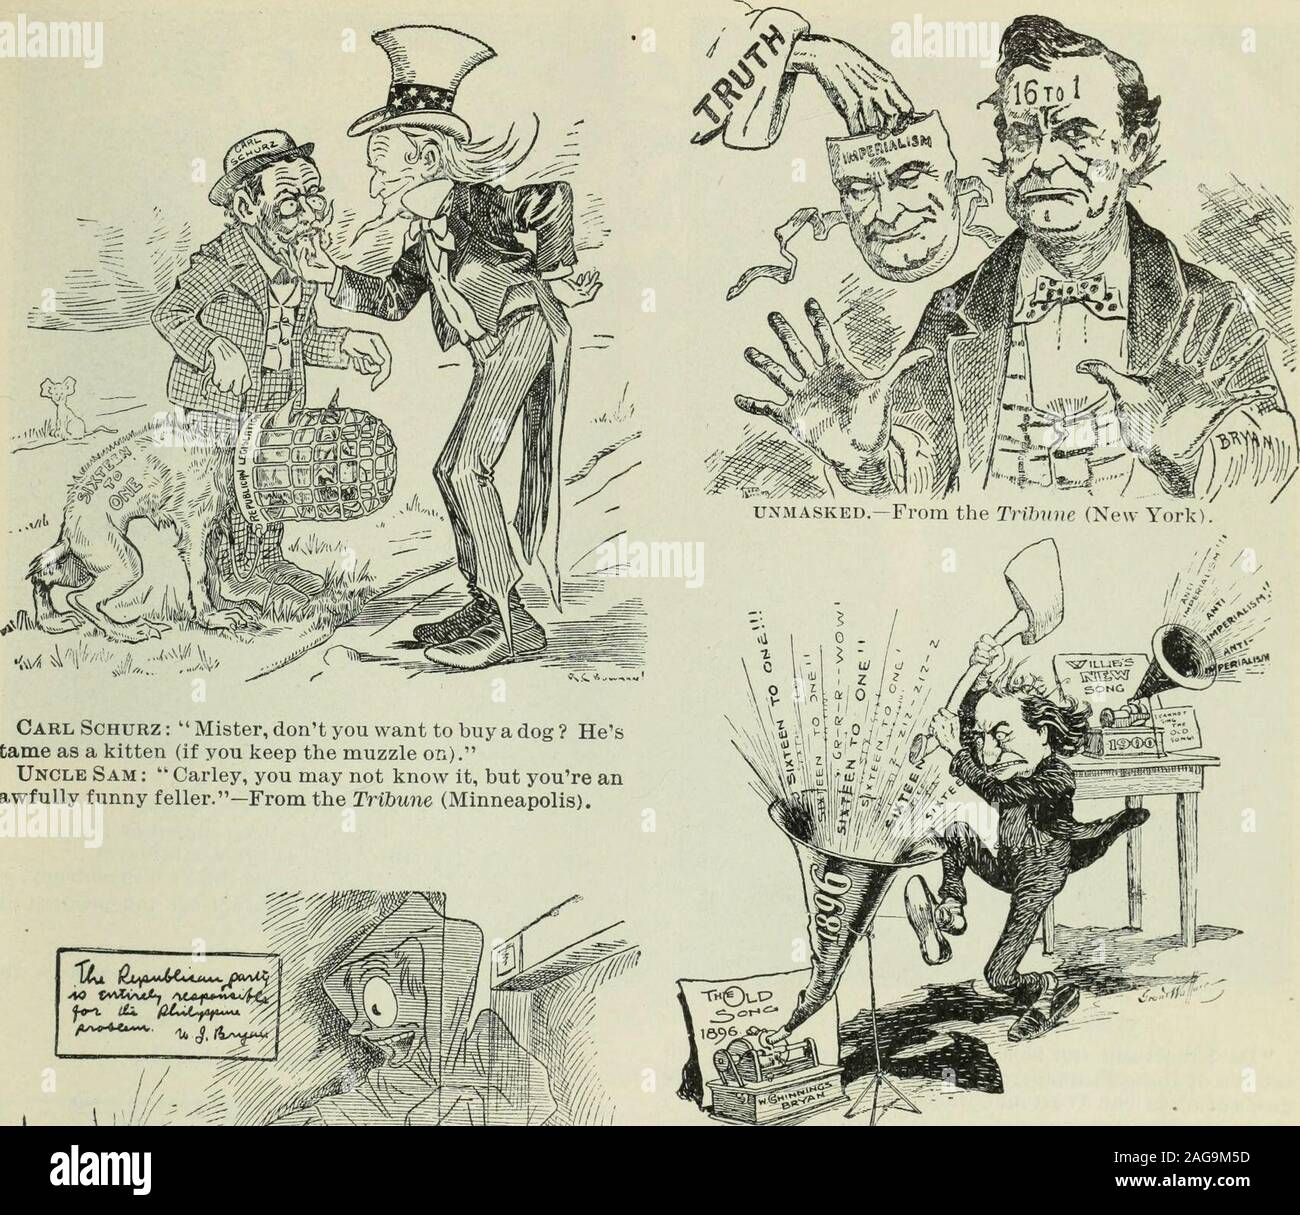 John Bull Uncle Sam Stockfotos & John Bull Uncle Sam Bilder